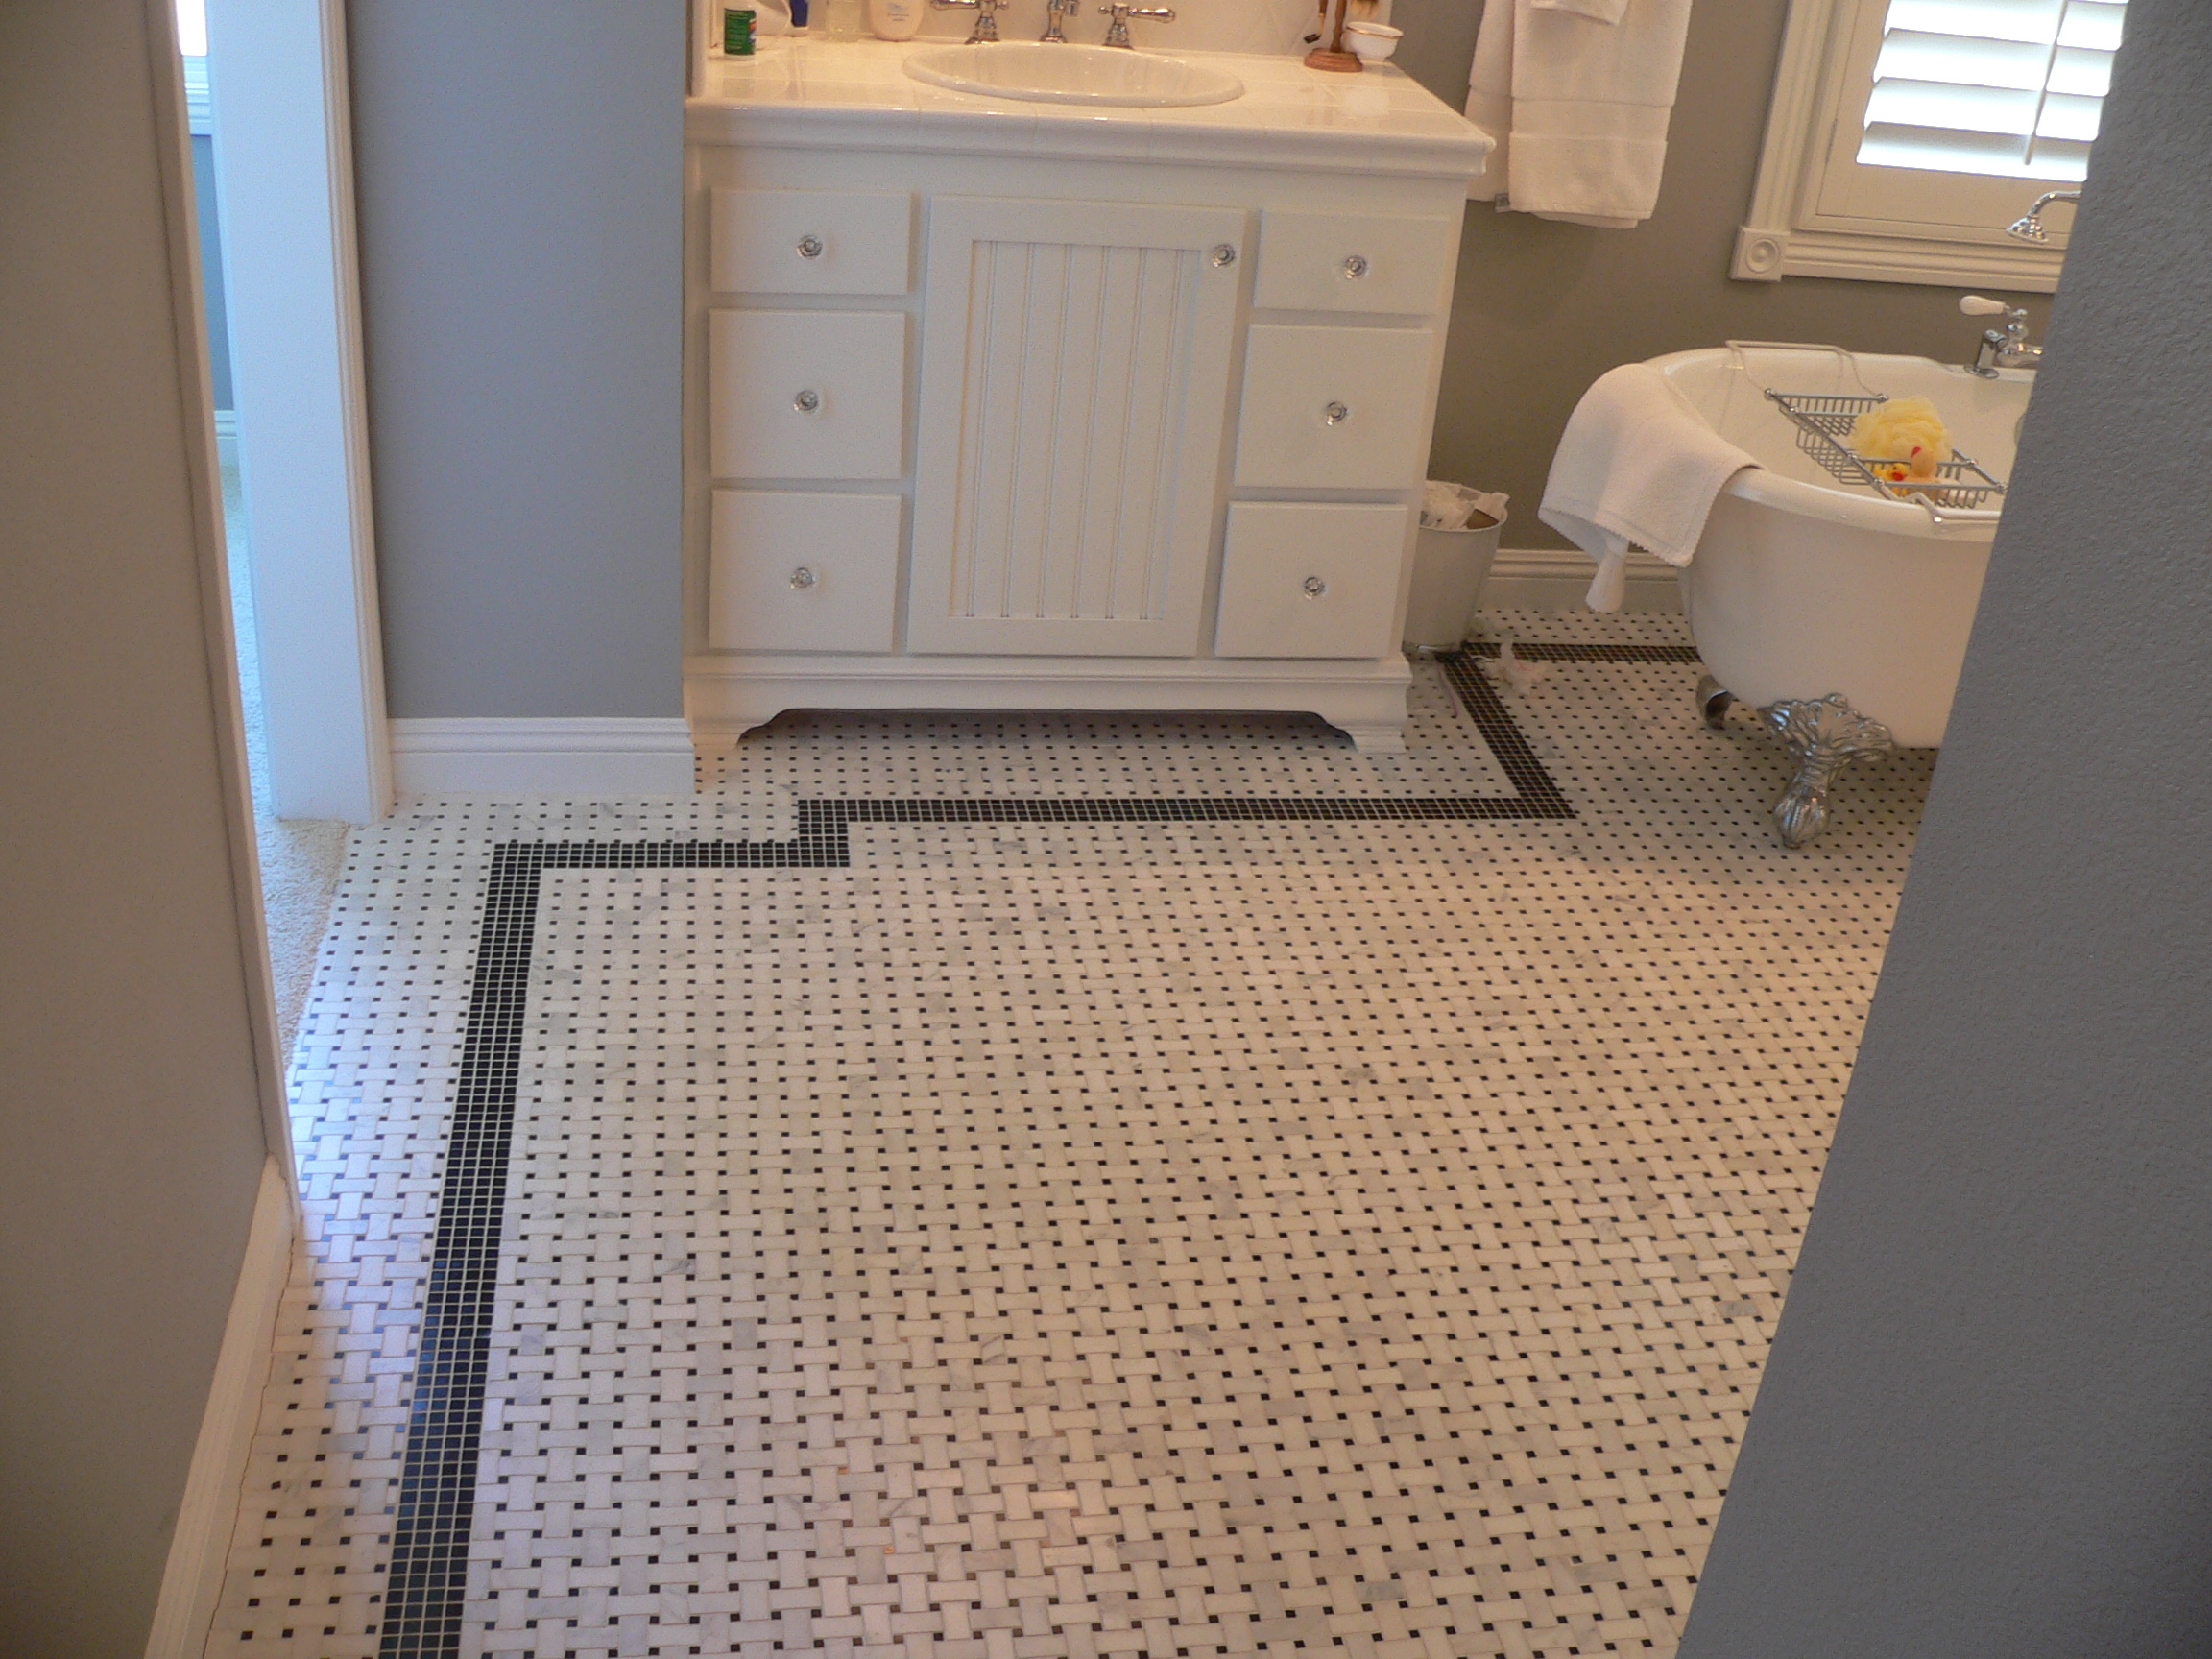 Mosaic Floor I Did In Fountain Valley Ca The Tile Came From Dal Tile